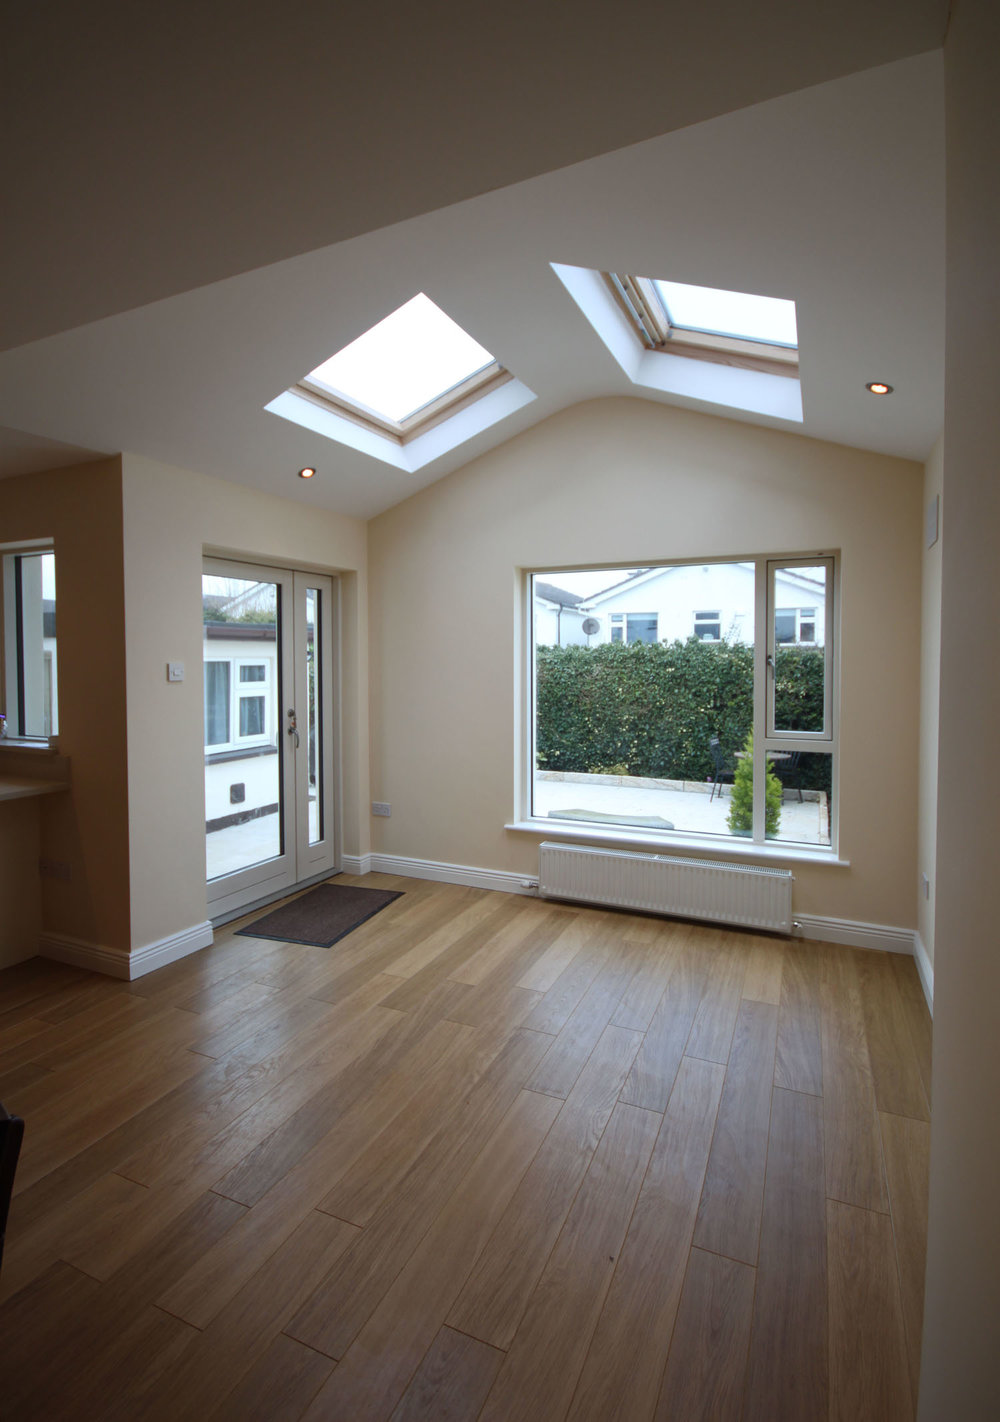 Architect, House Extensions, Planning Permissions, Extension Dublin